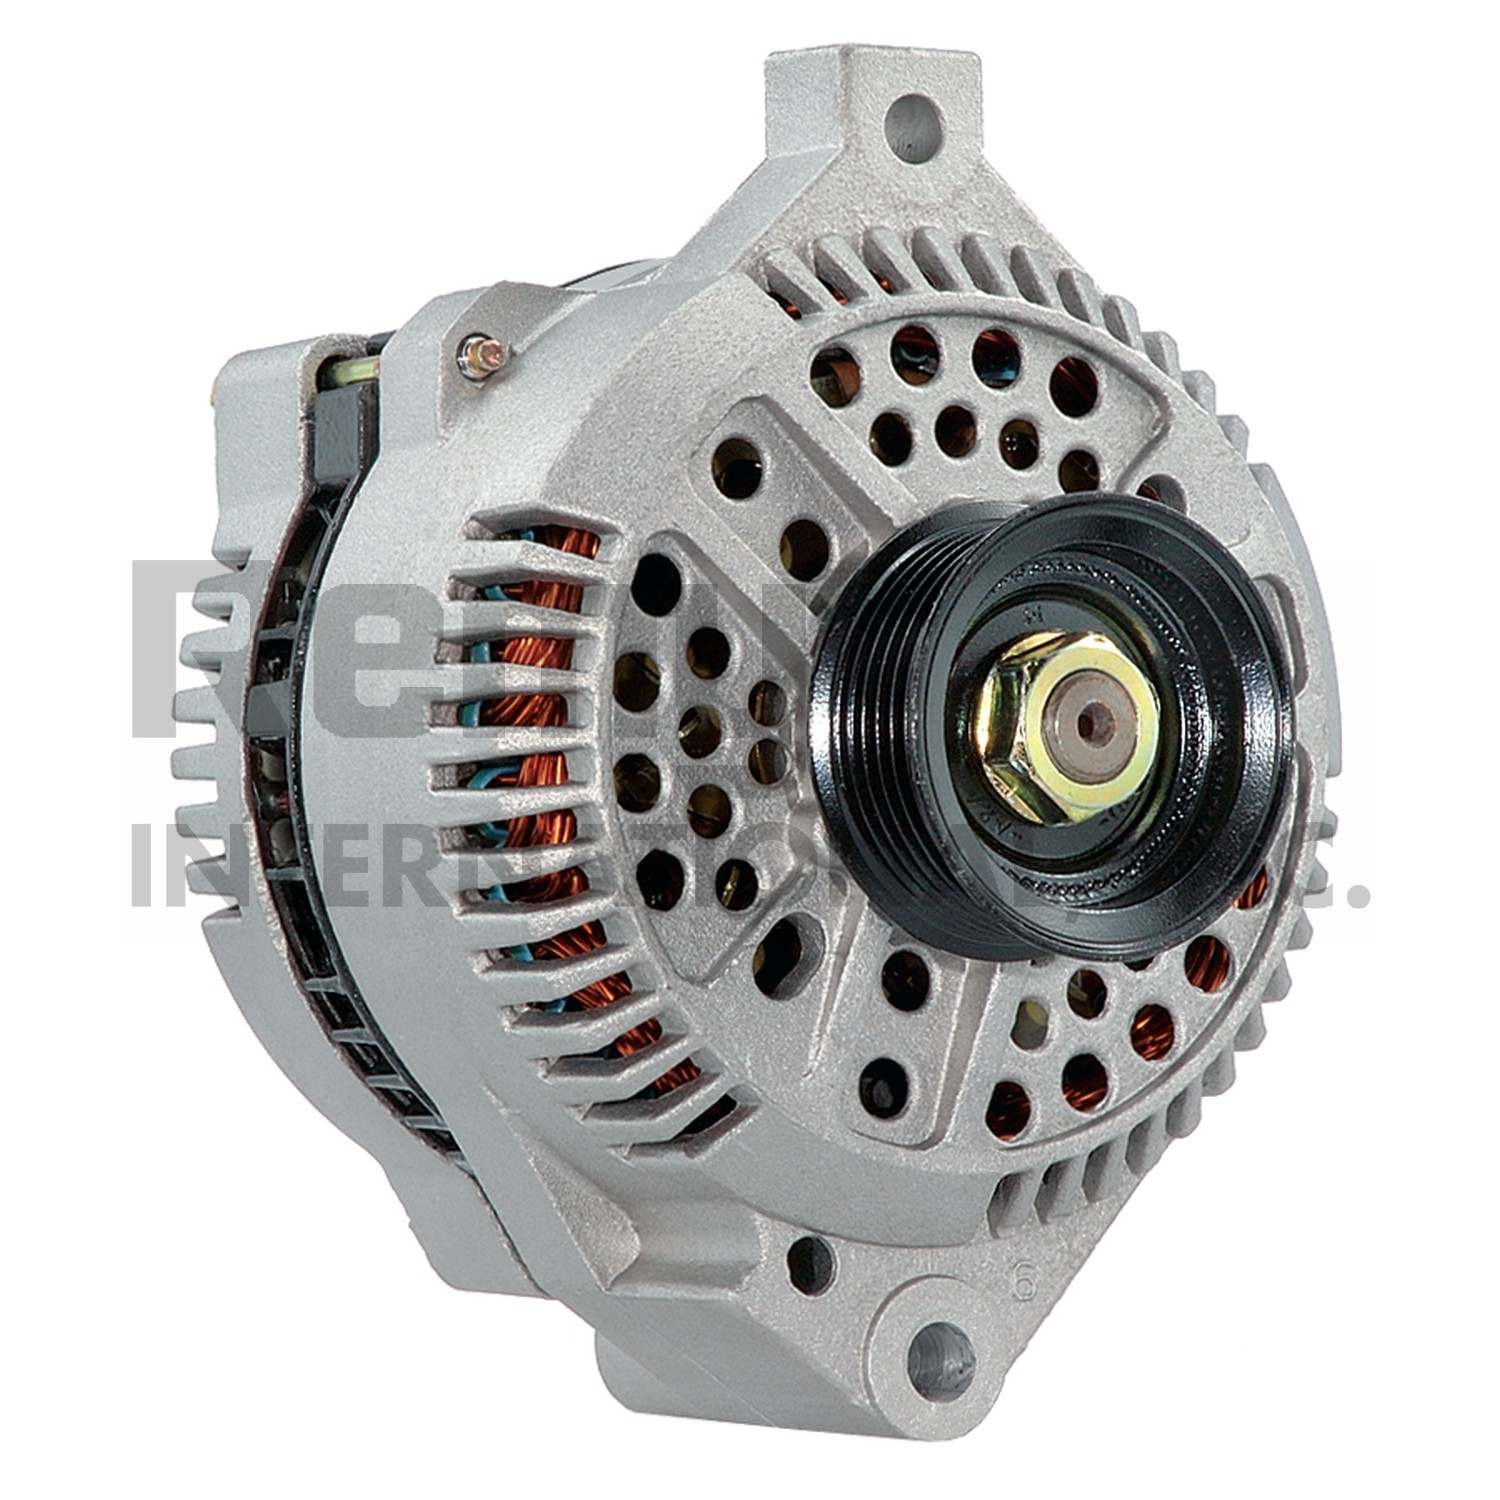 2000 Mercury Sable Alternator WD 20116